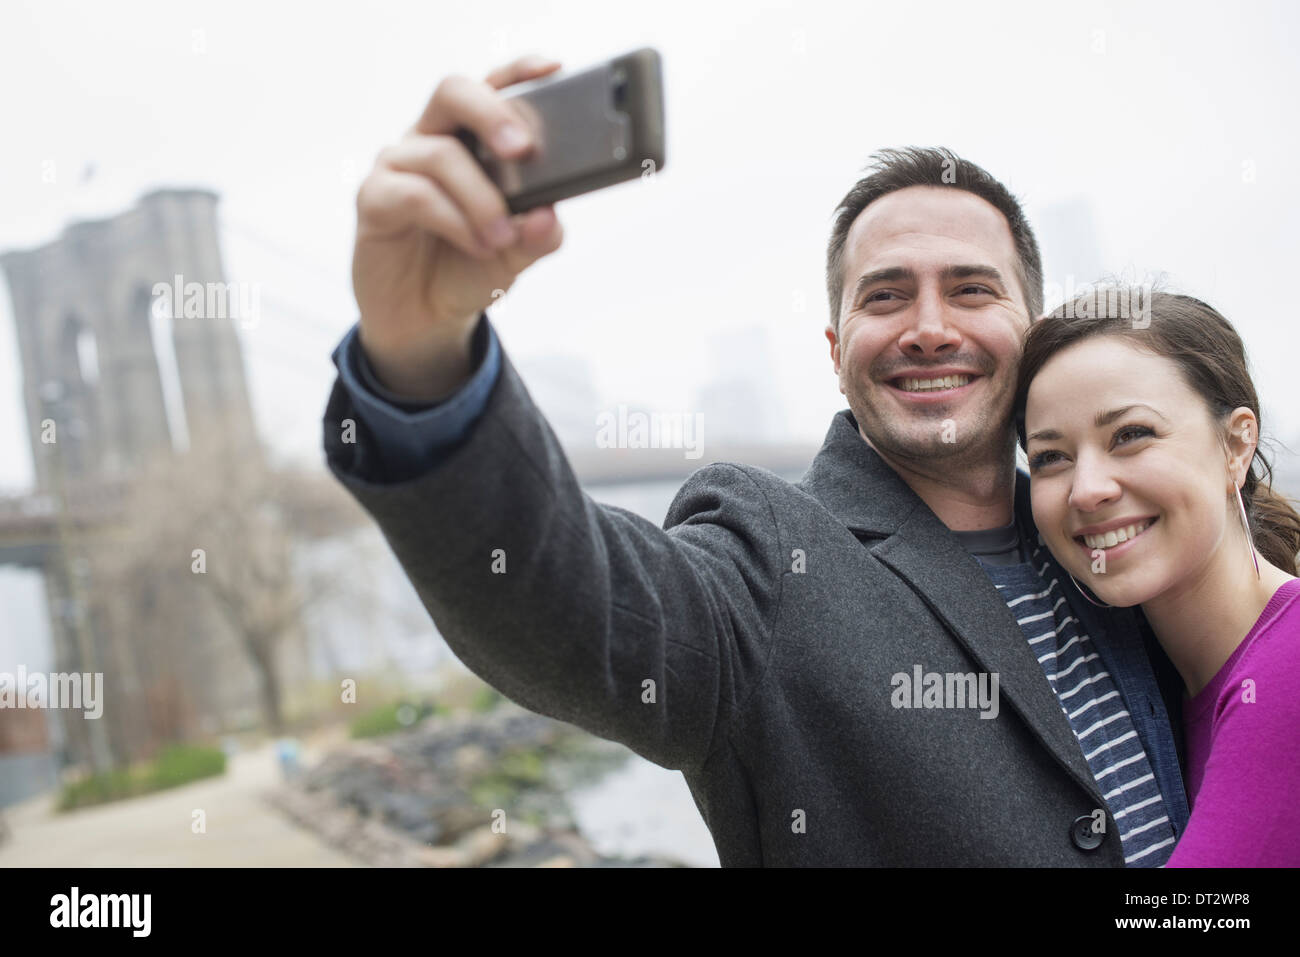 New York city The Brooklyn Bridge crossing over the East River A couple taking a picture with a phone a selfy of themselves - Stock Image